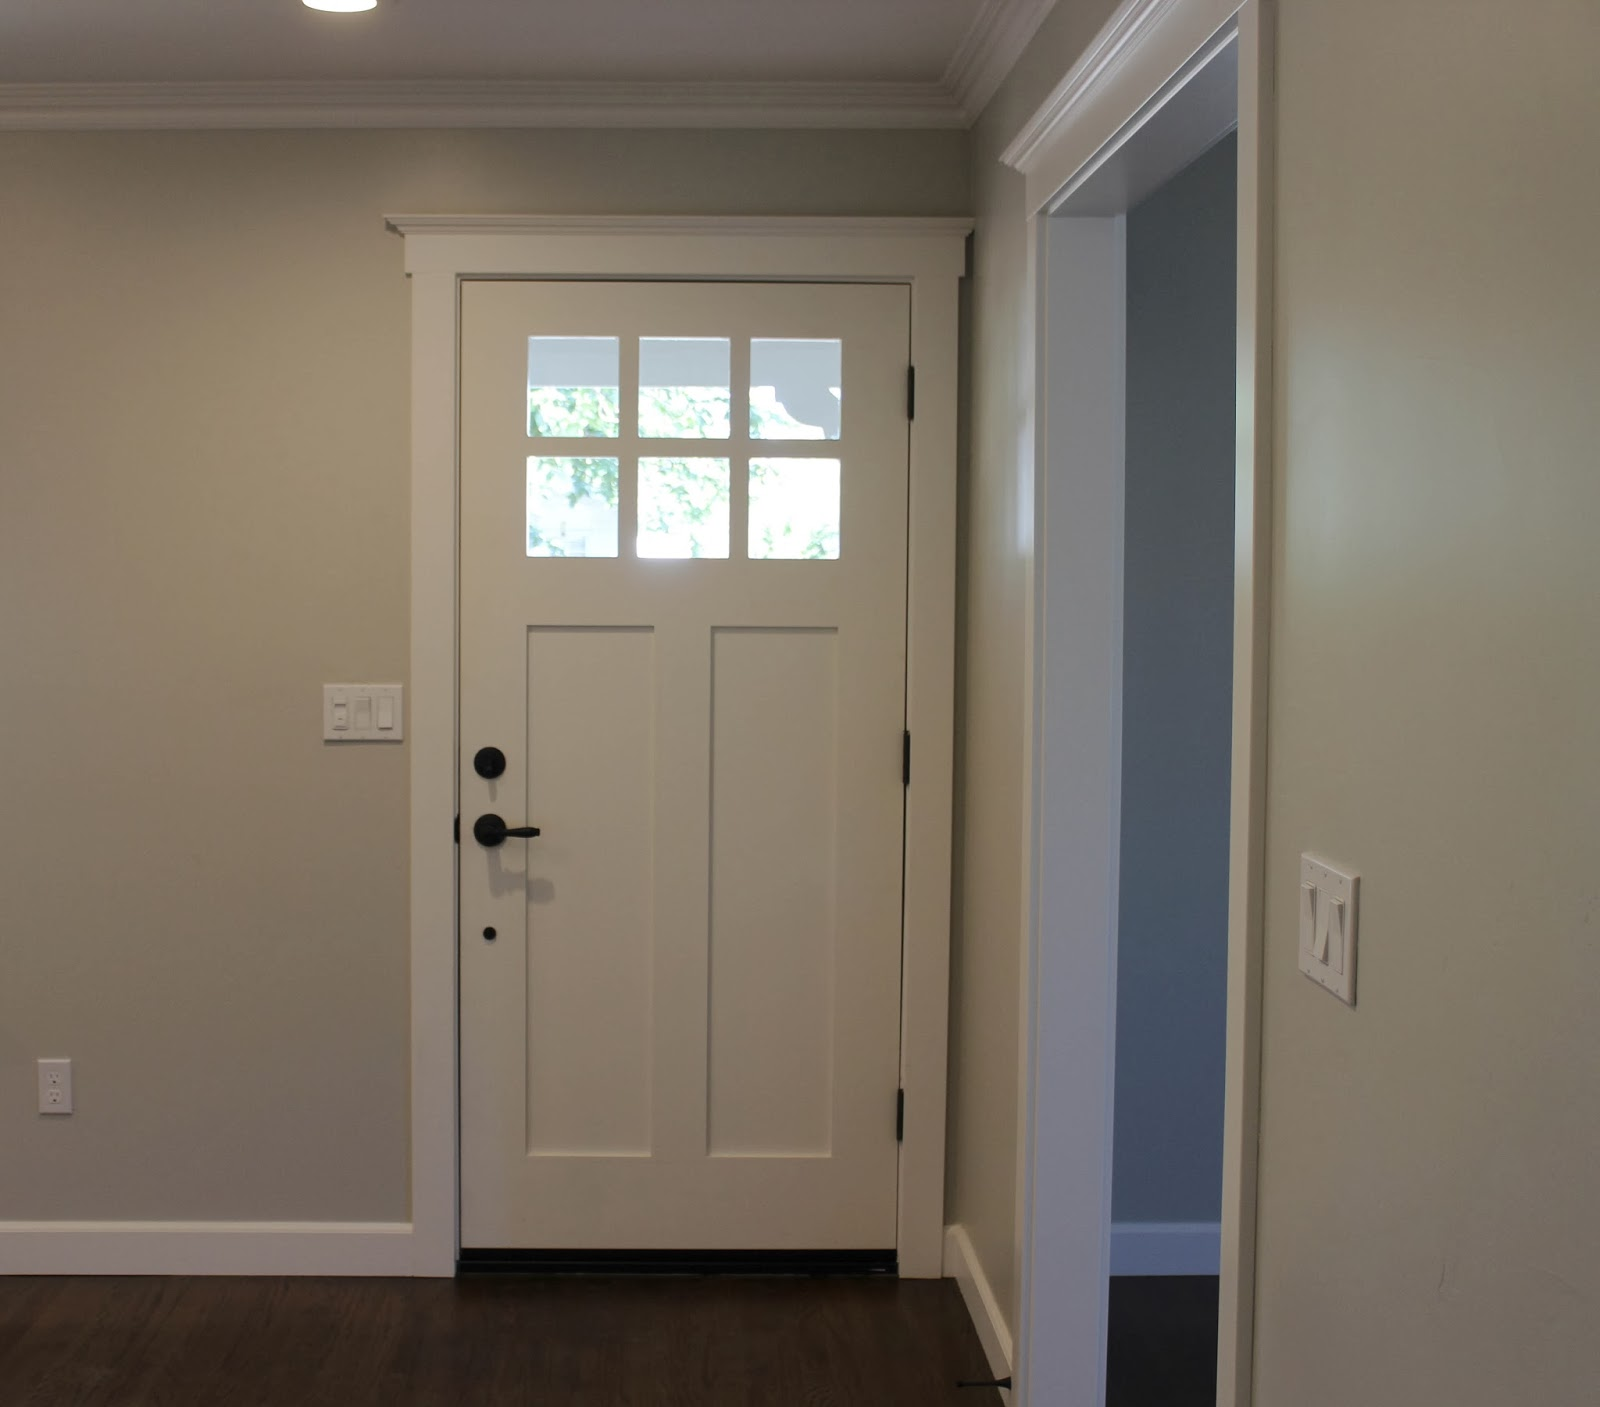 Traditional door casing styles vs contemporary door casing for Interior door styles for homes